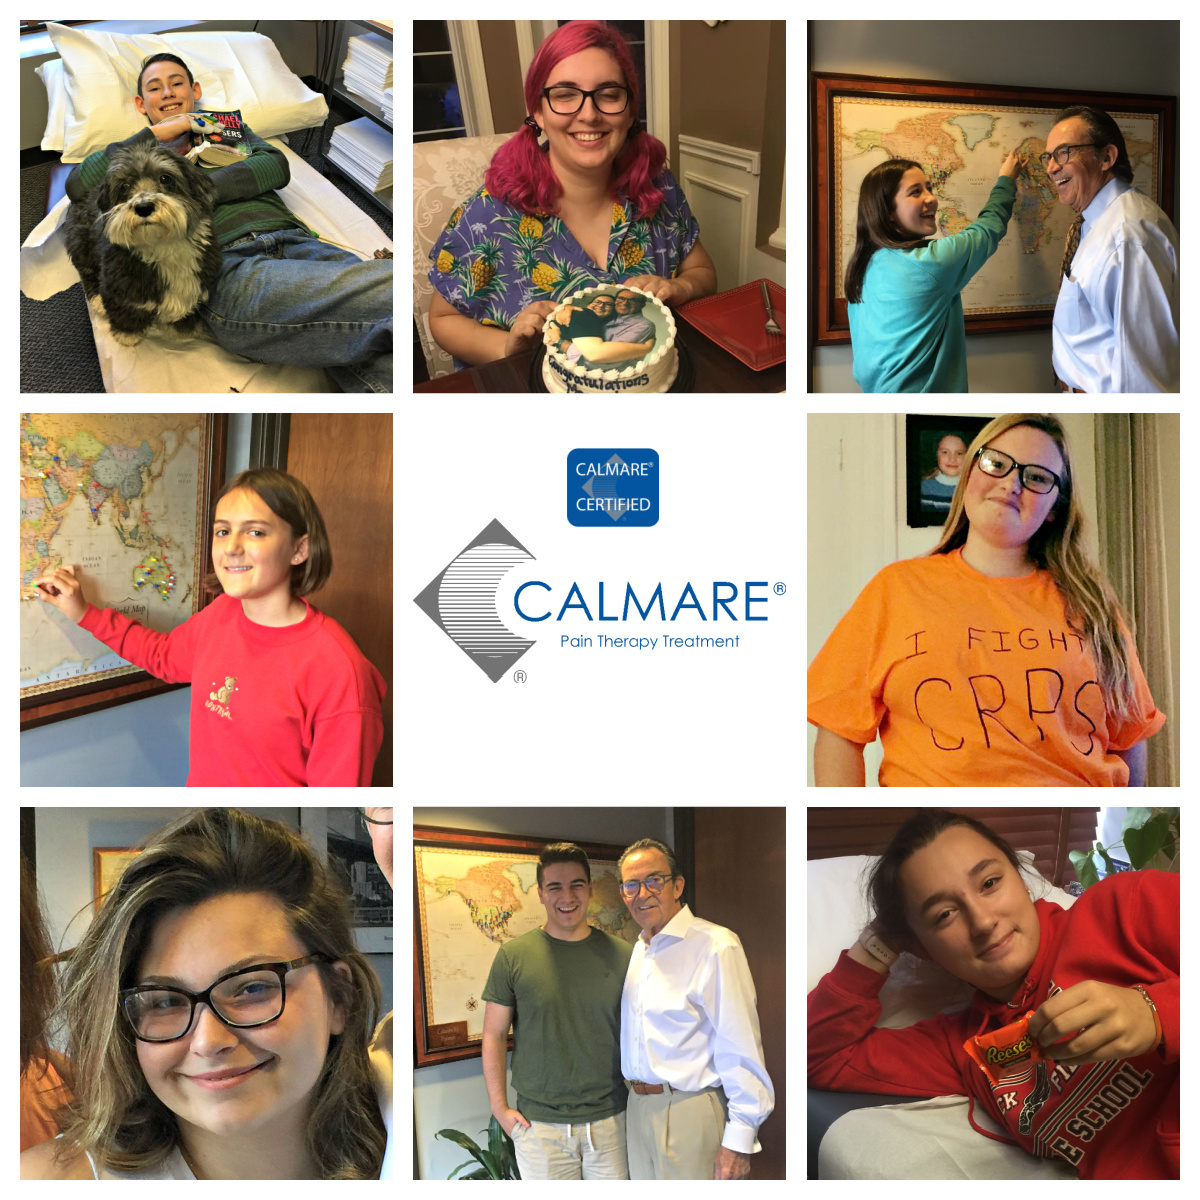 calmare therapy is a alternative pain management therapy for children